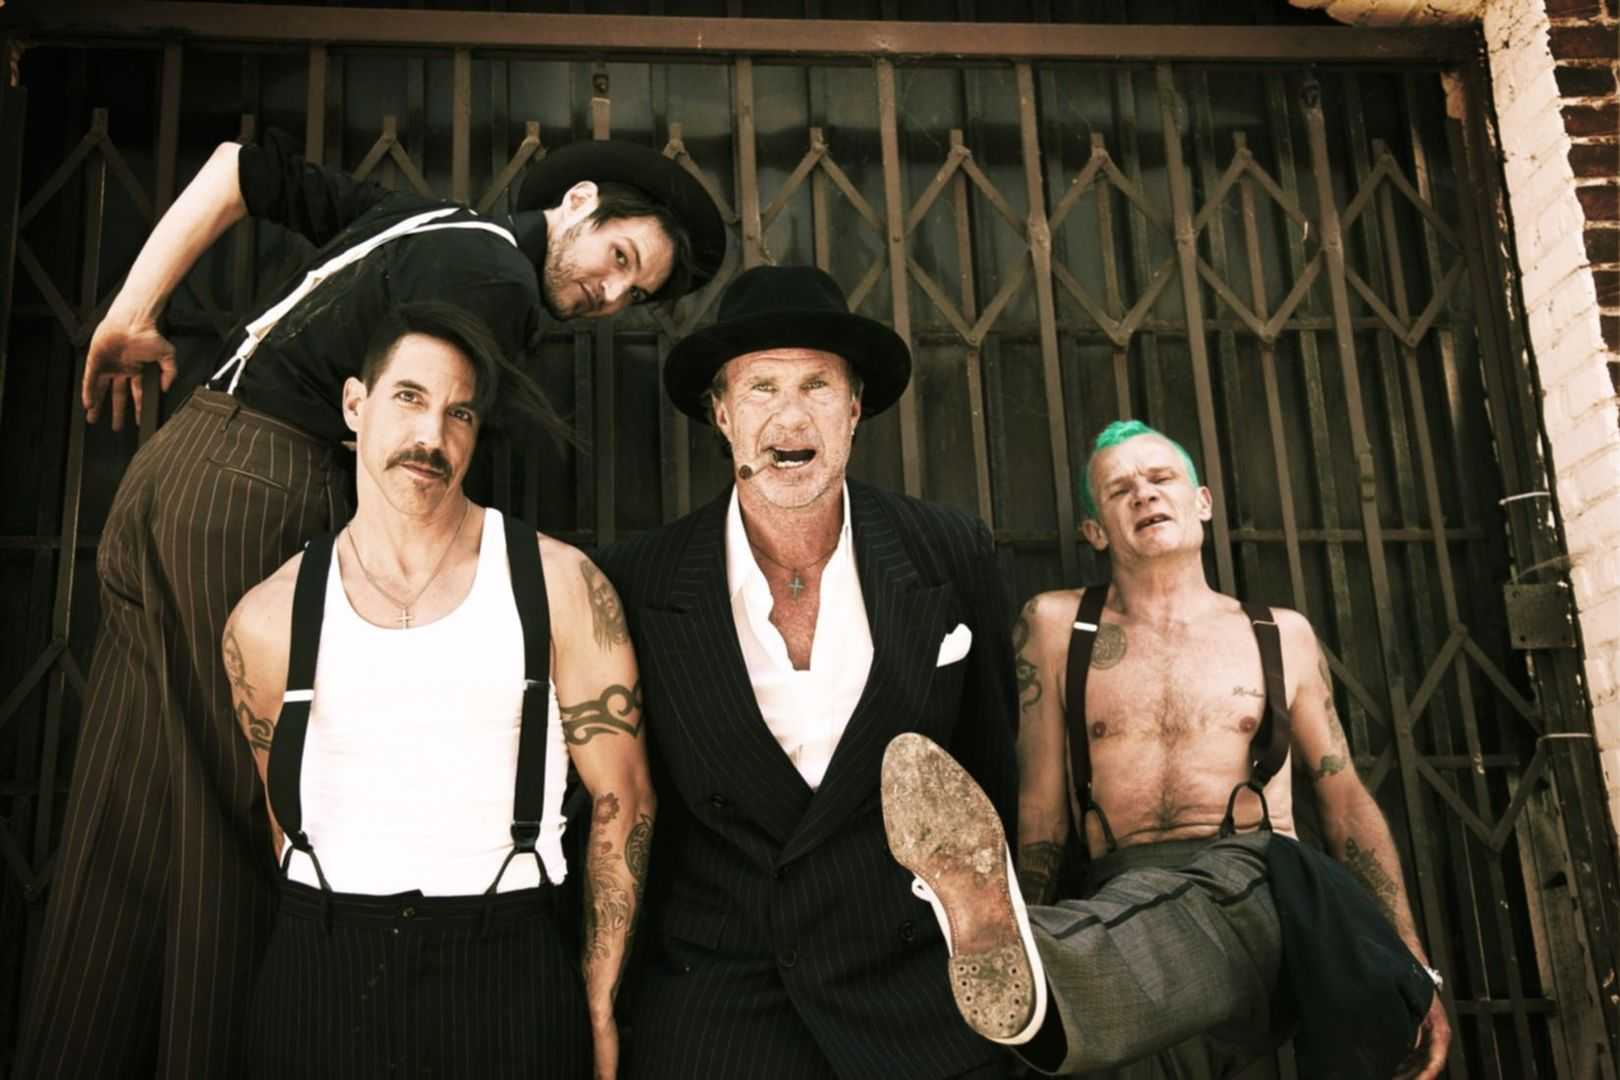 red hot chili peppers spontanes beatles cover mit anthony kiedis am bass. Black Bedroom Furniture Sets. Home Design Ideas